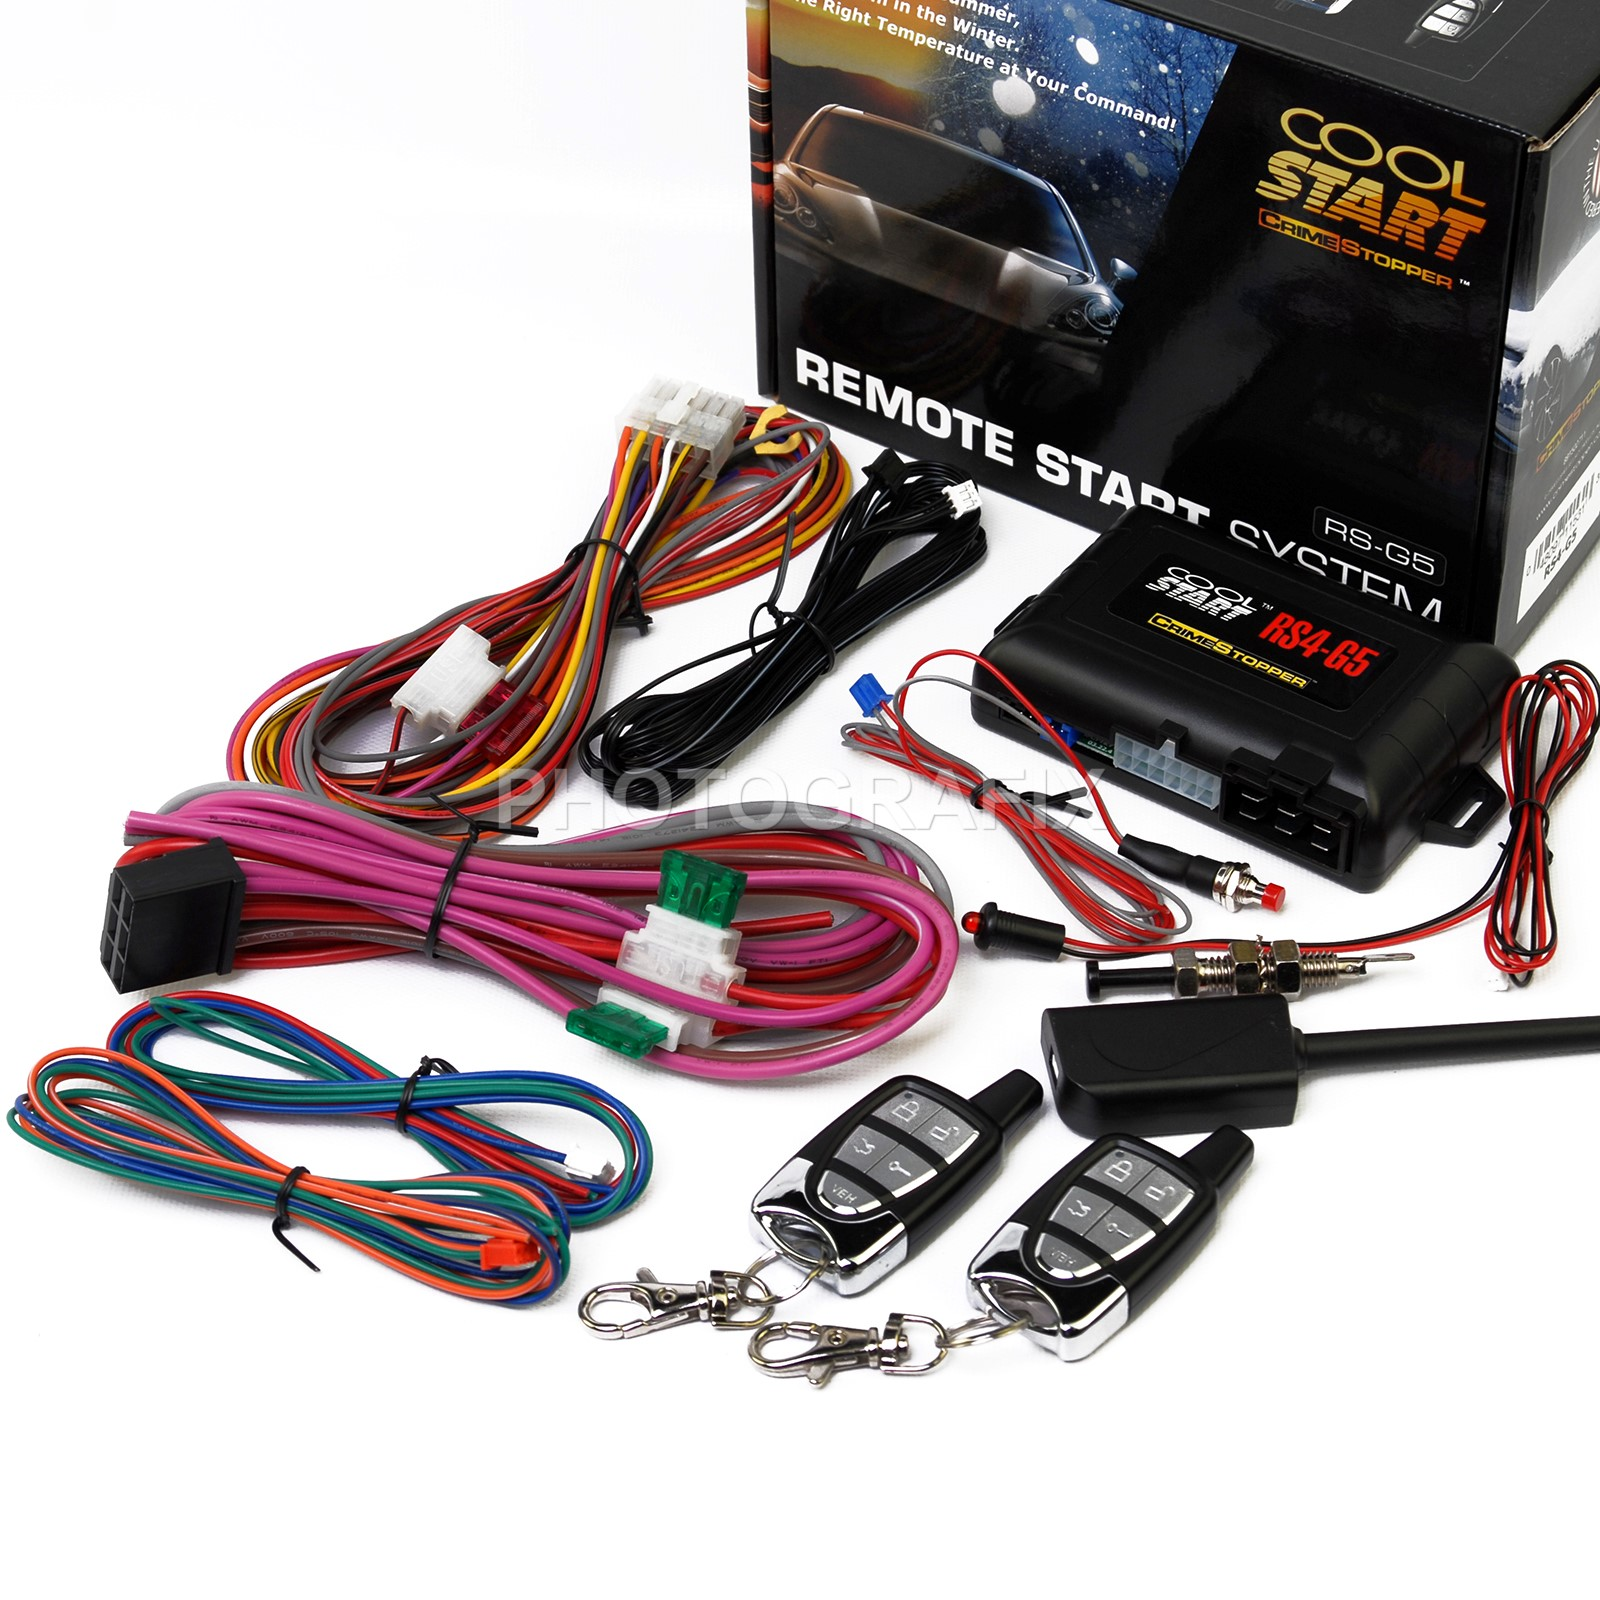 hight resolution of crimestopper rs4 g5 1 way remote start keyless entry system with trunk release